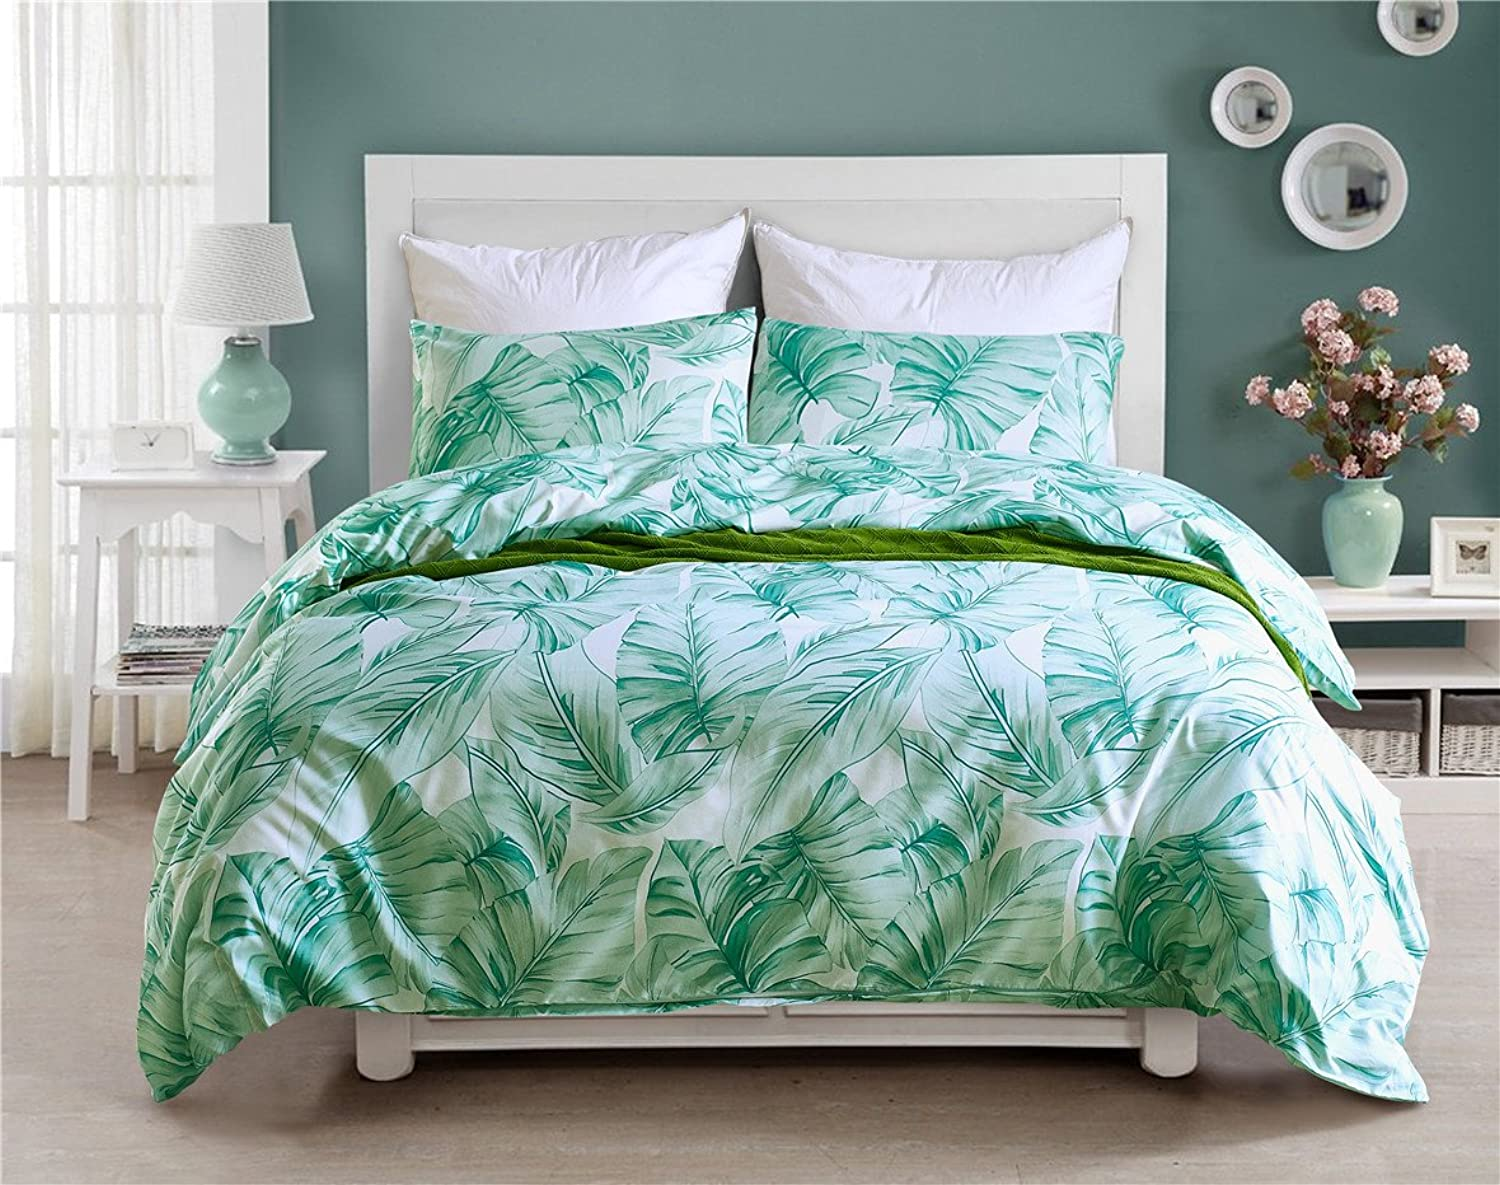 Tenghe Botanical Duvet Cover Set Reversible Tropical Green Palm Leaves Garden Bedding Sets for Girls Bed Cover NO Comforter(Leafy,Twin)